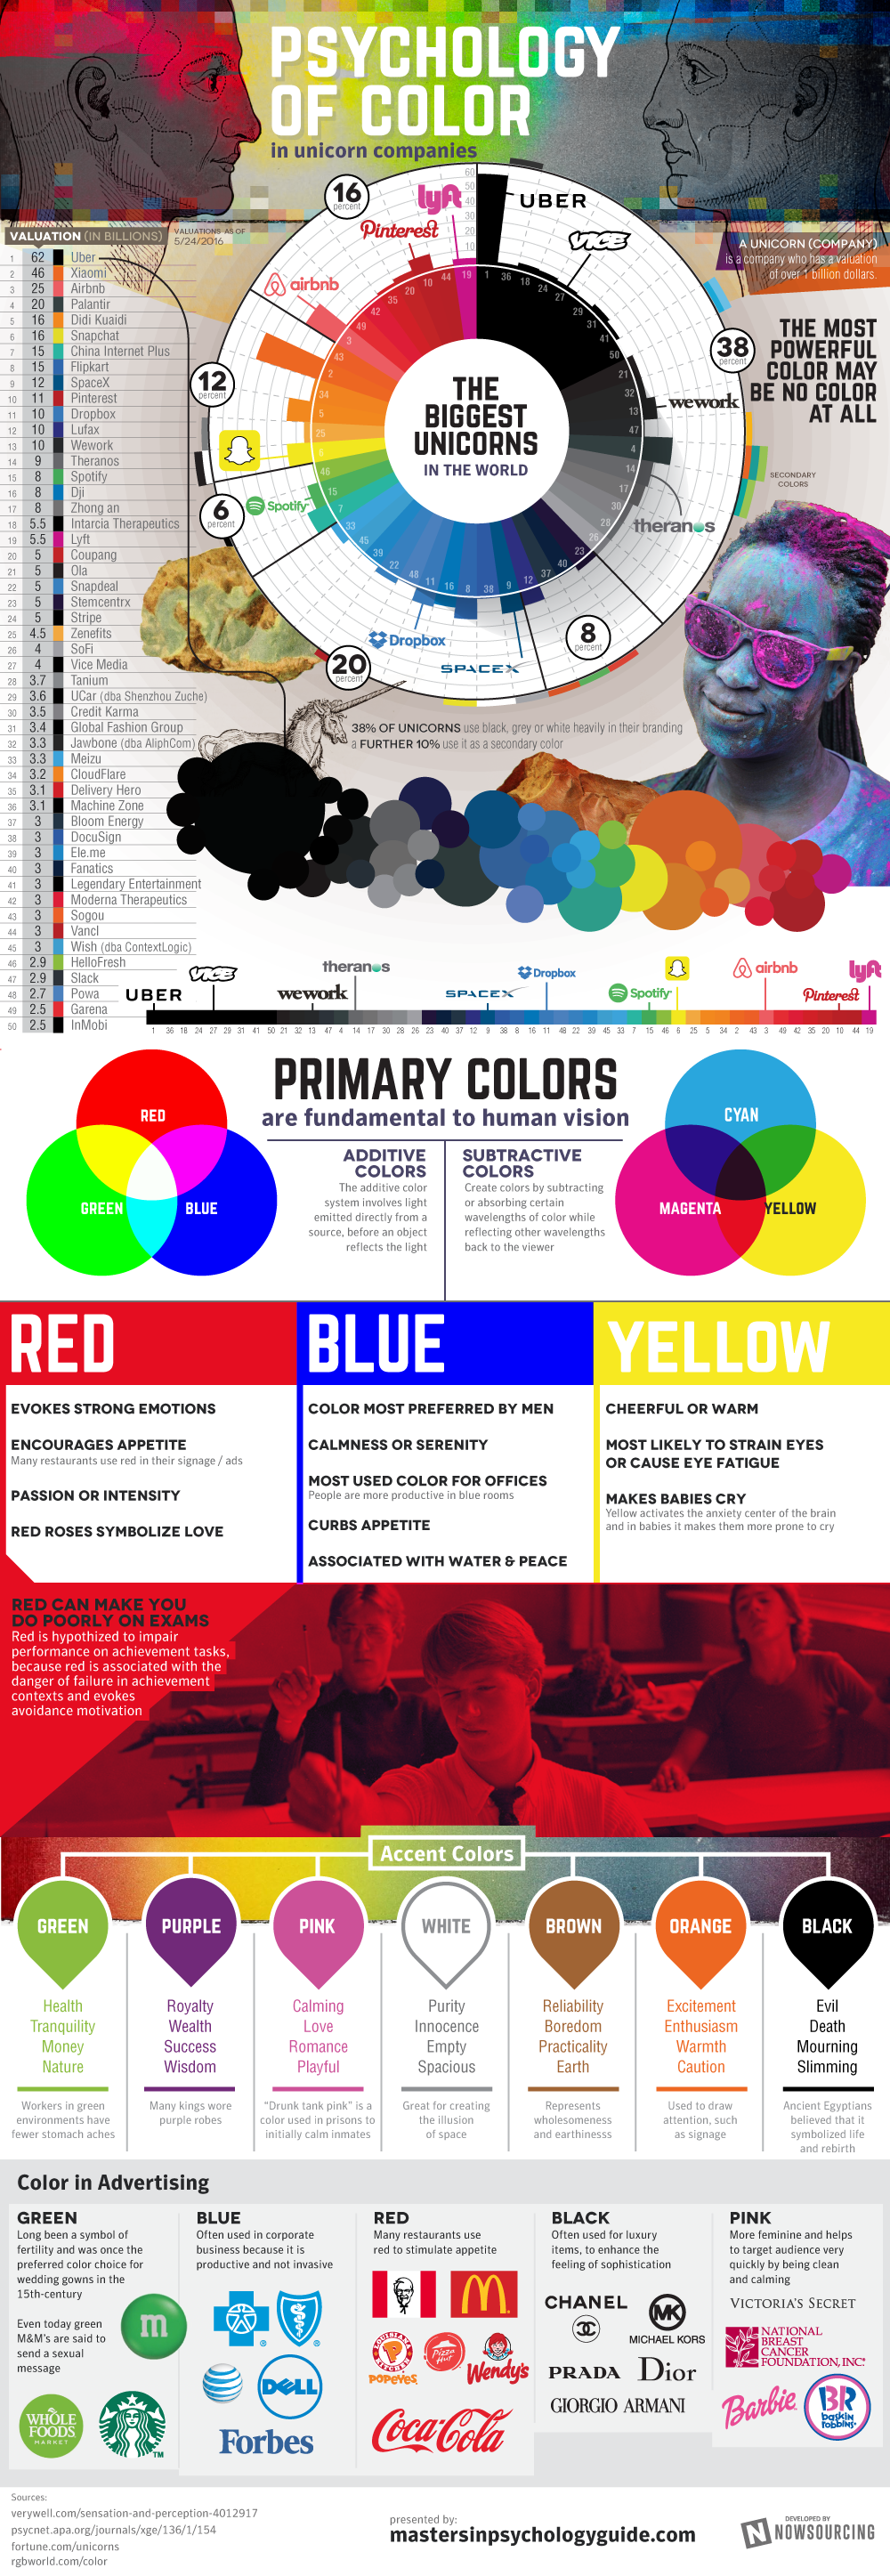 The Psychology of Color in Business